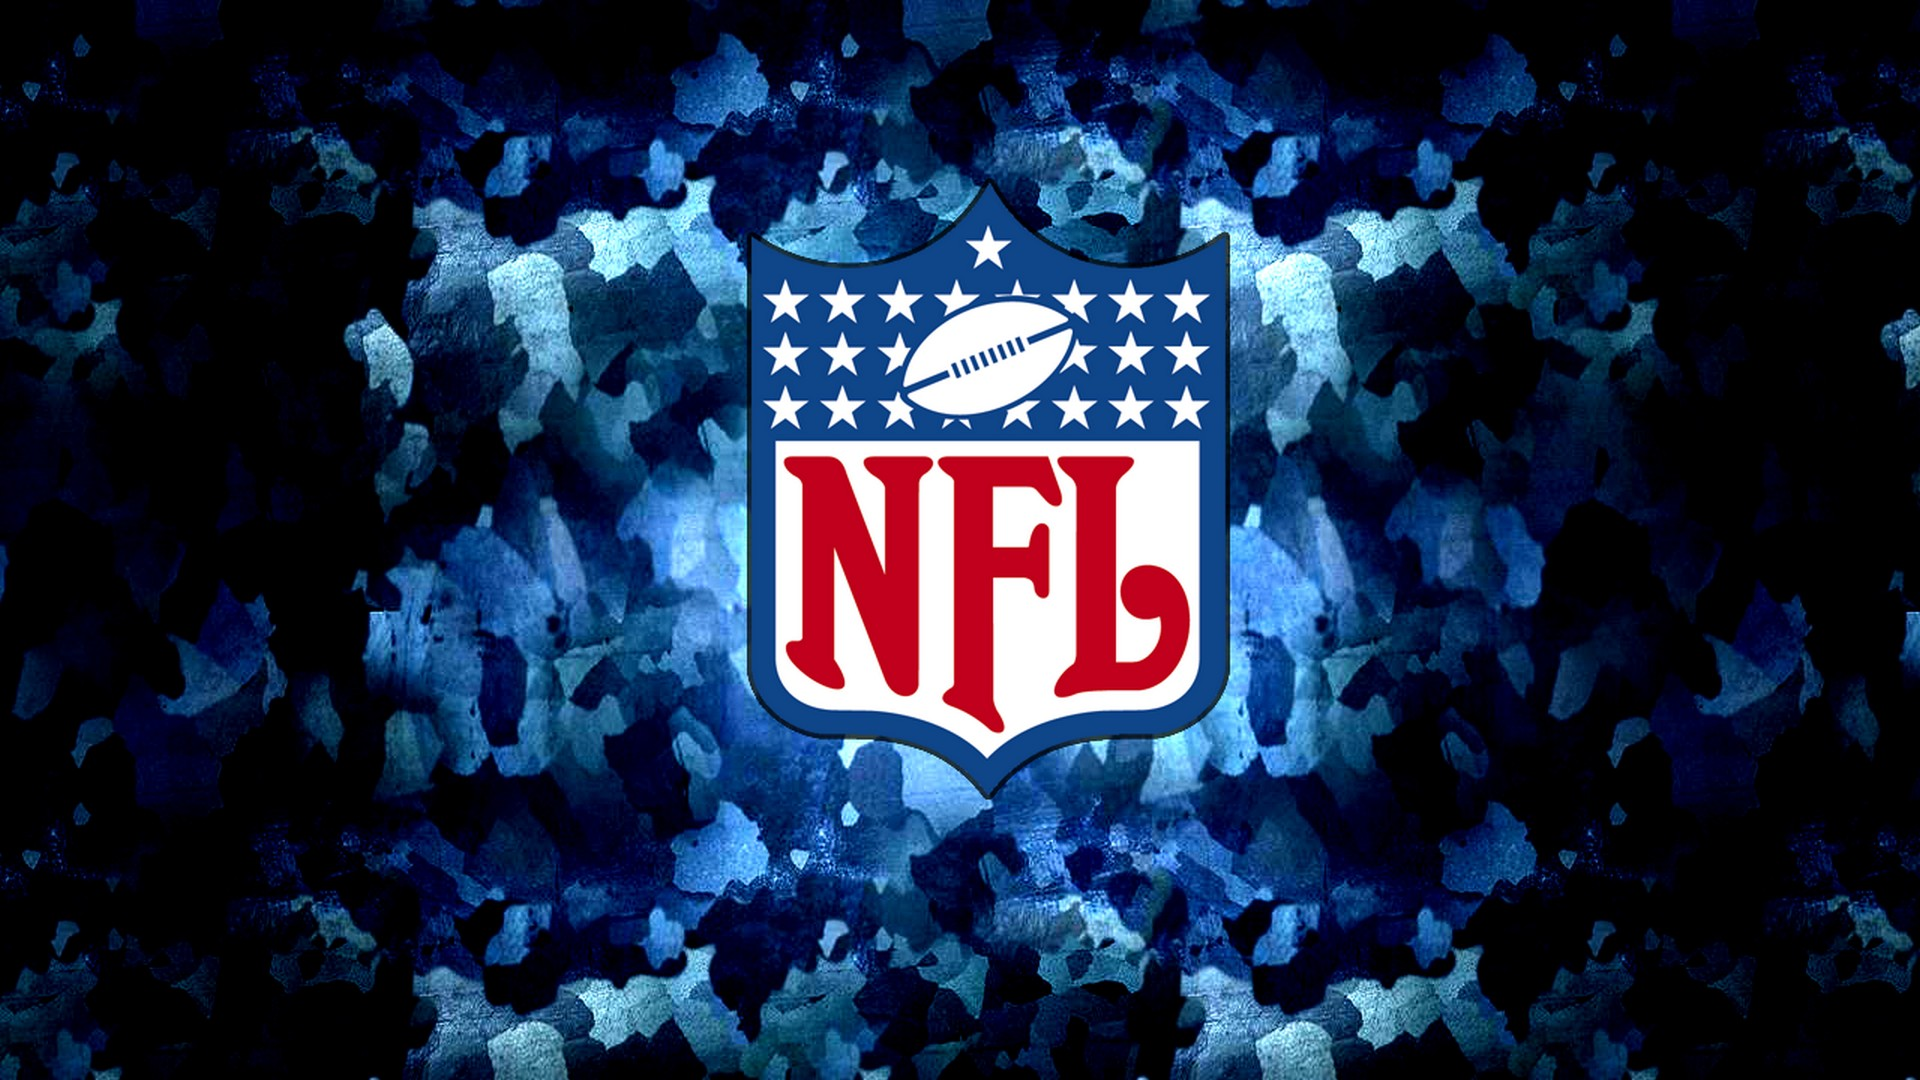 Cool NFL Desktop Wallpaper 2019 NFL Football Wallpapers 1920x1080